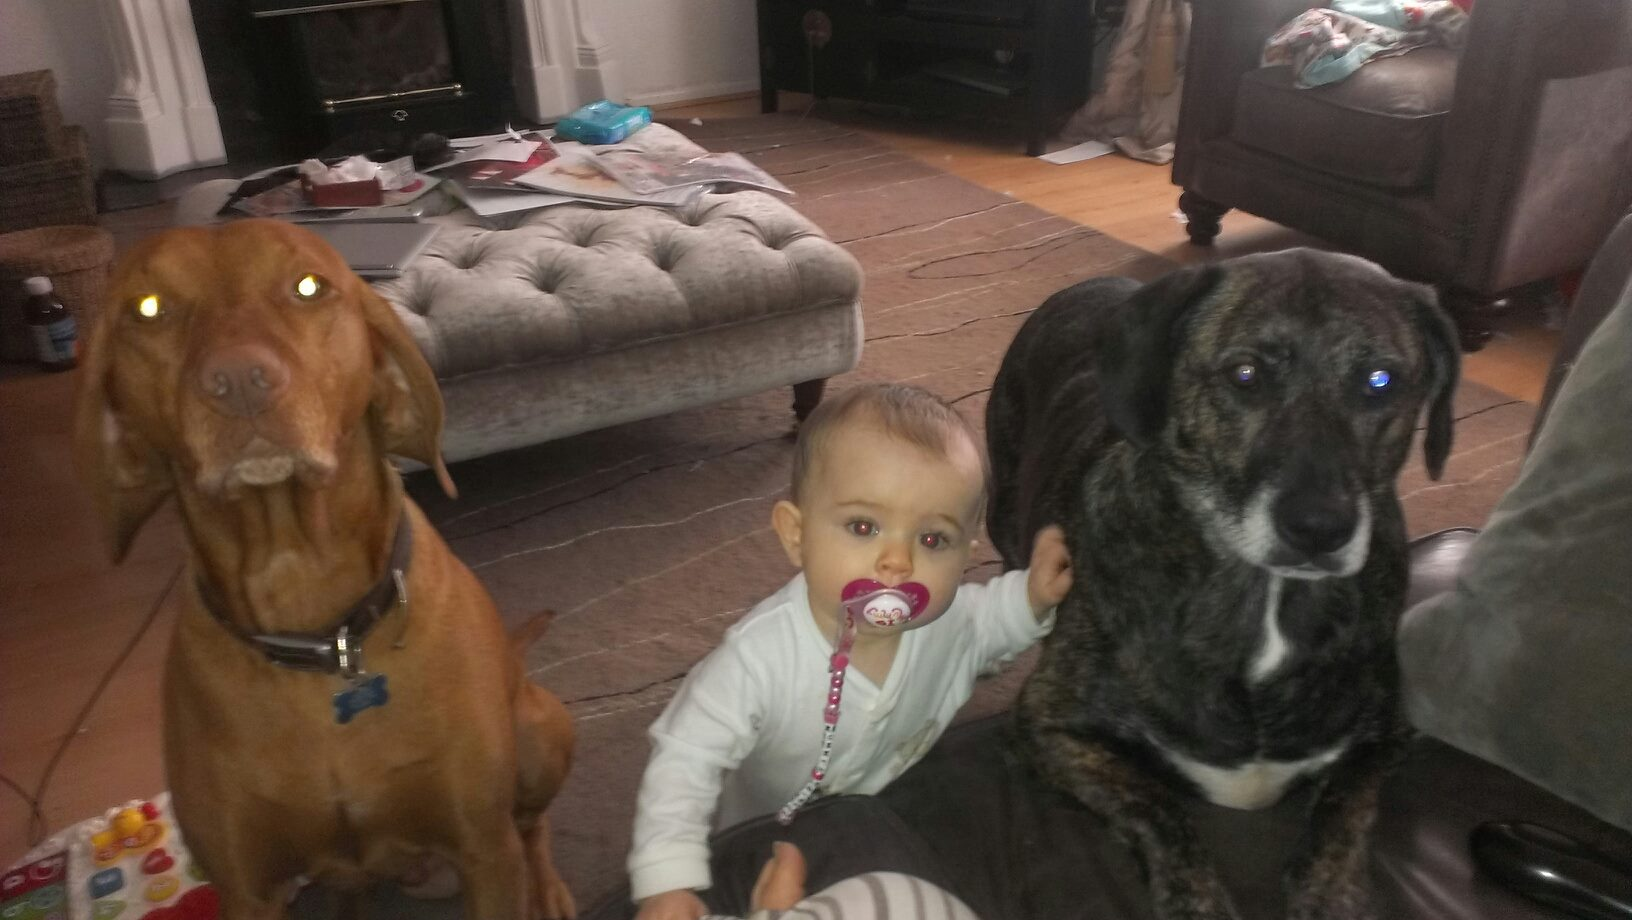 My 3 monsters